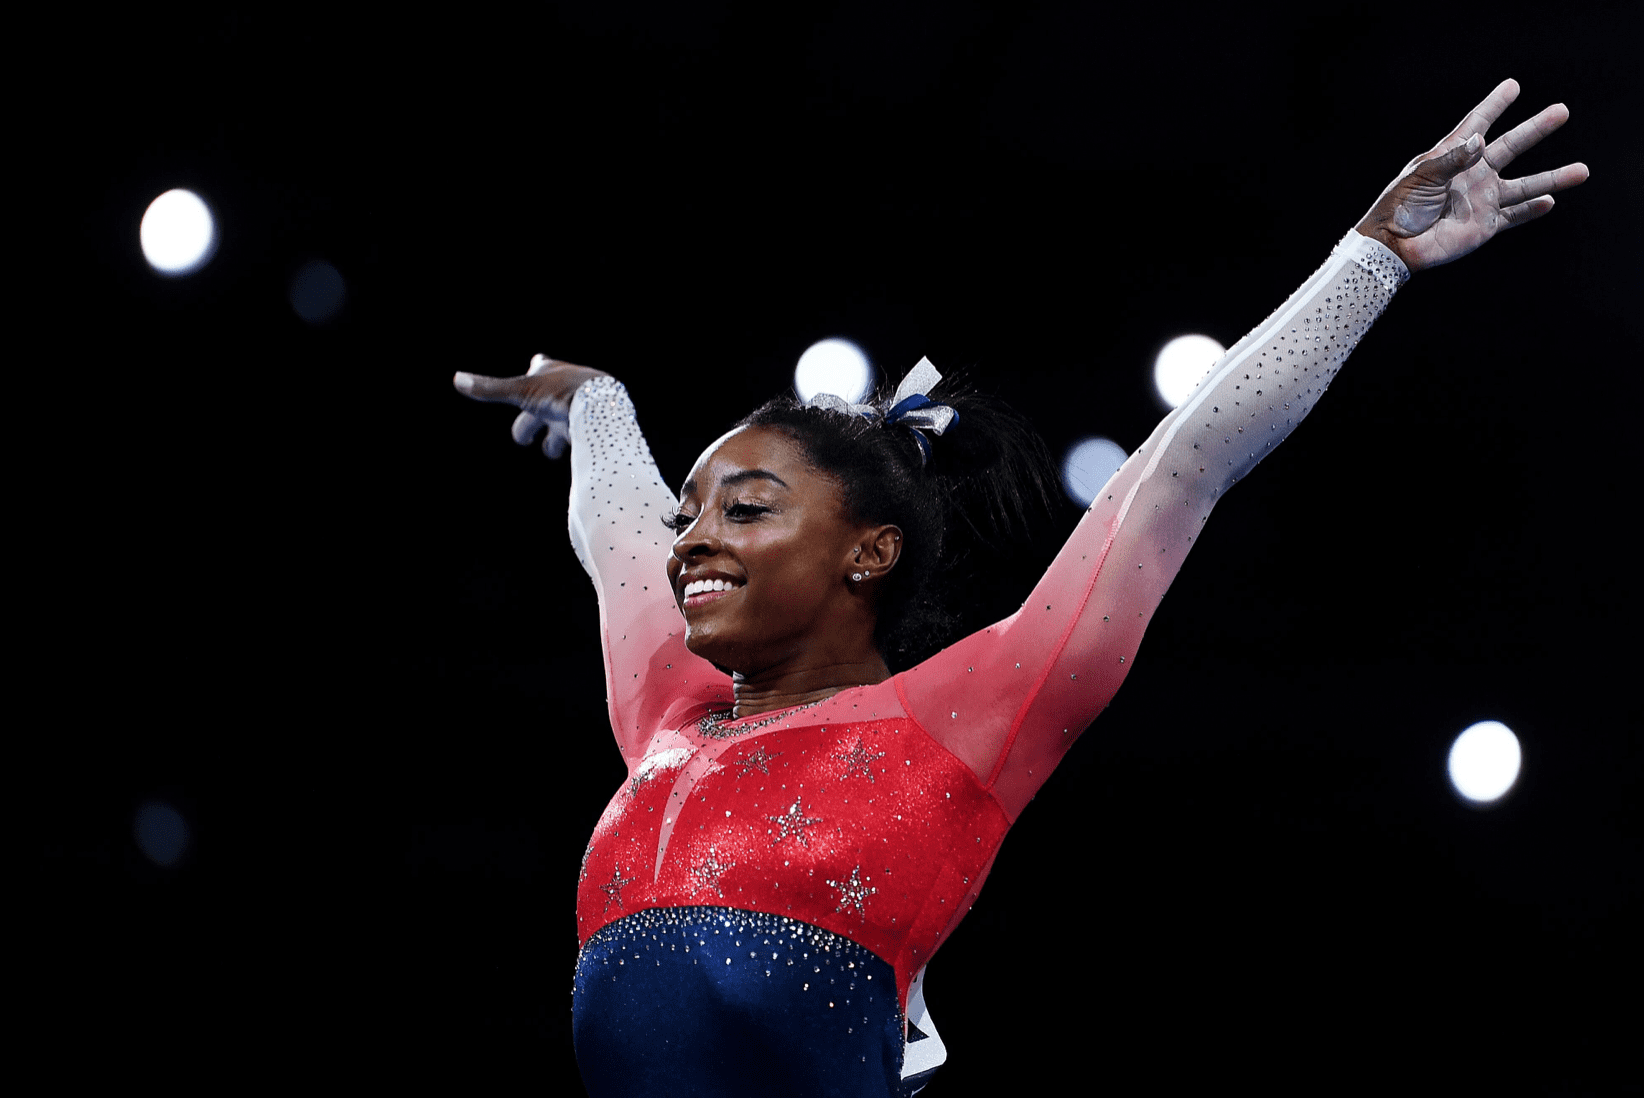 Simone Biles during her performance at the FIG Artistic Gymnastics World Championships on October 8, 2019. | Source: Getty Images